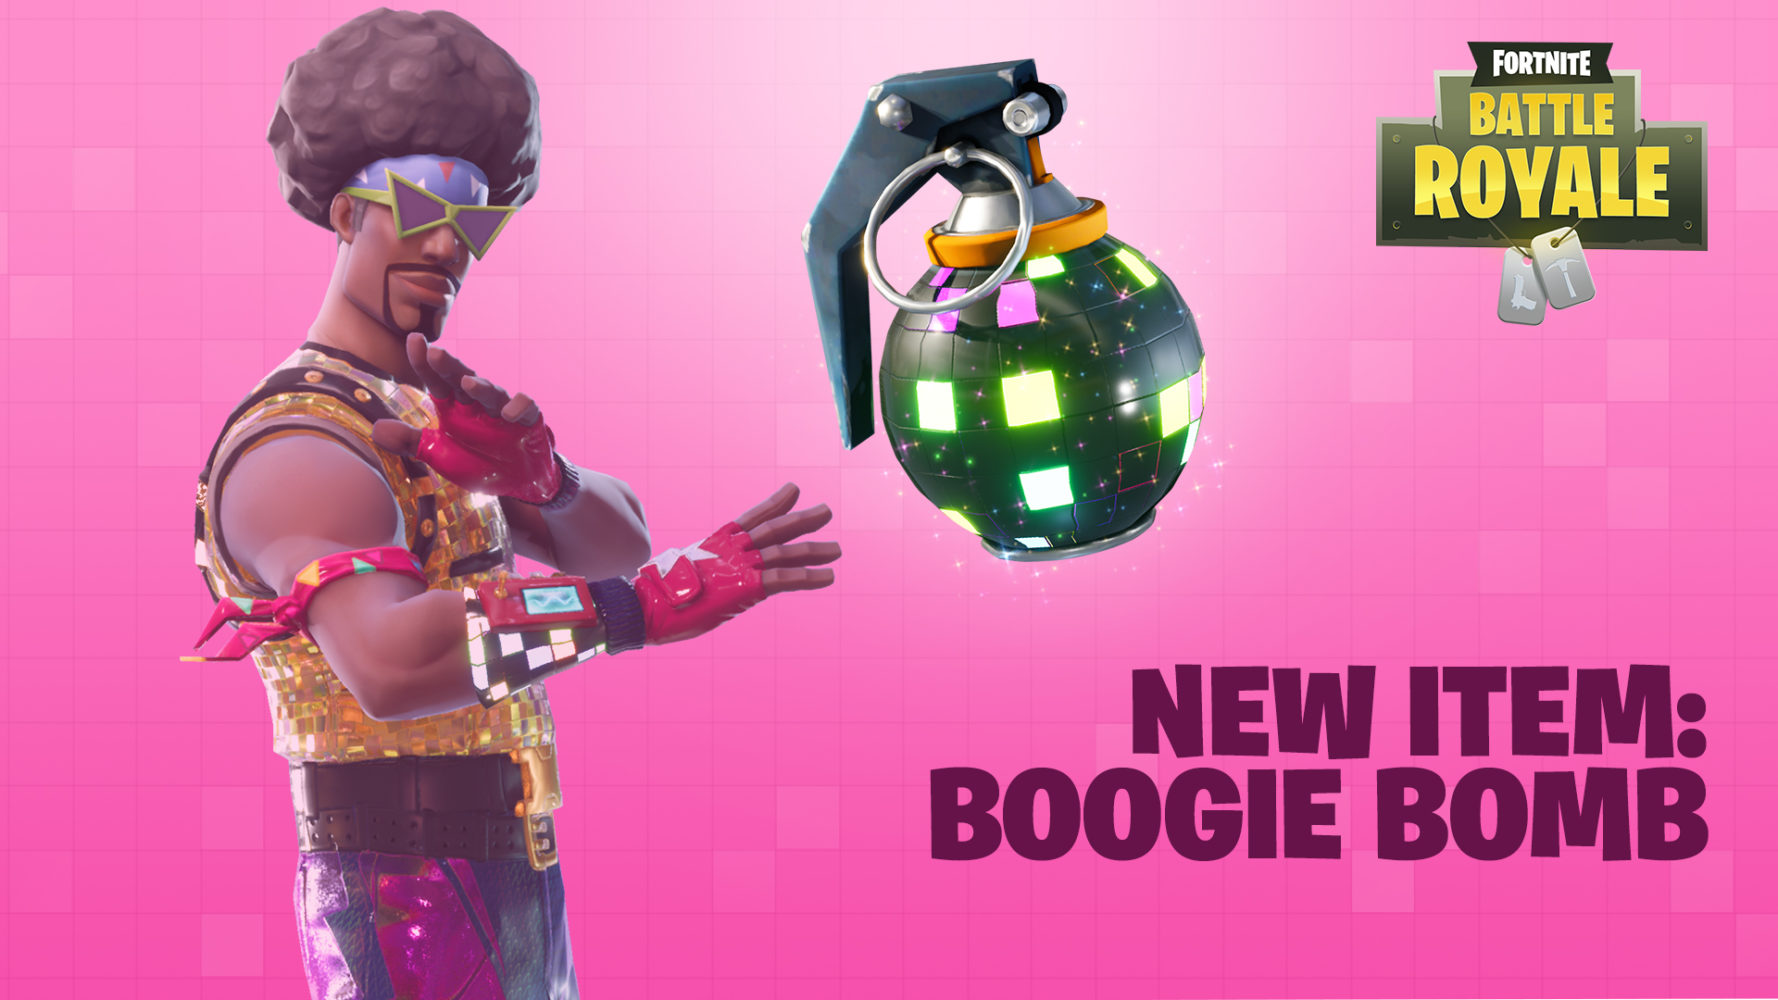 Fortnite Boogie bomb